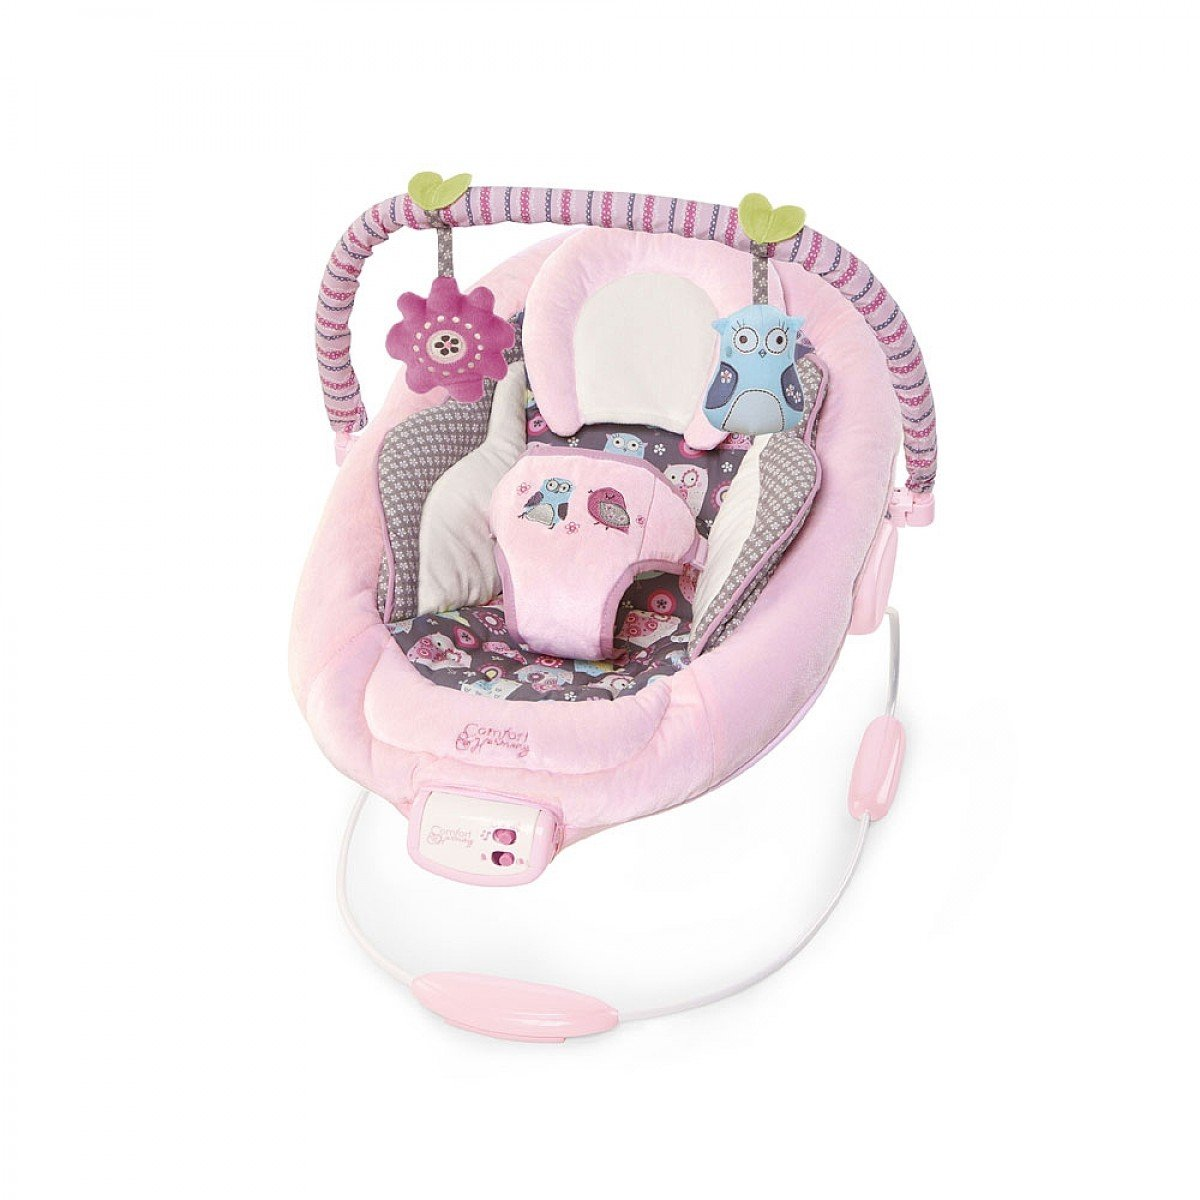 240603d8c Bright Starts-Baby Bouncer - Pitter Patter Toys   Nursery - Toy and ...